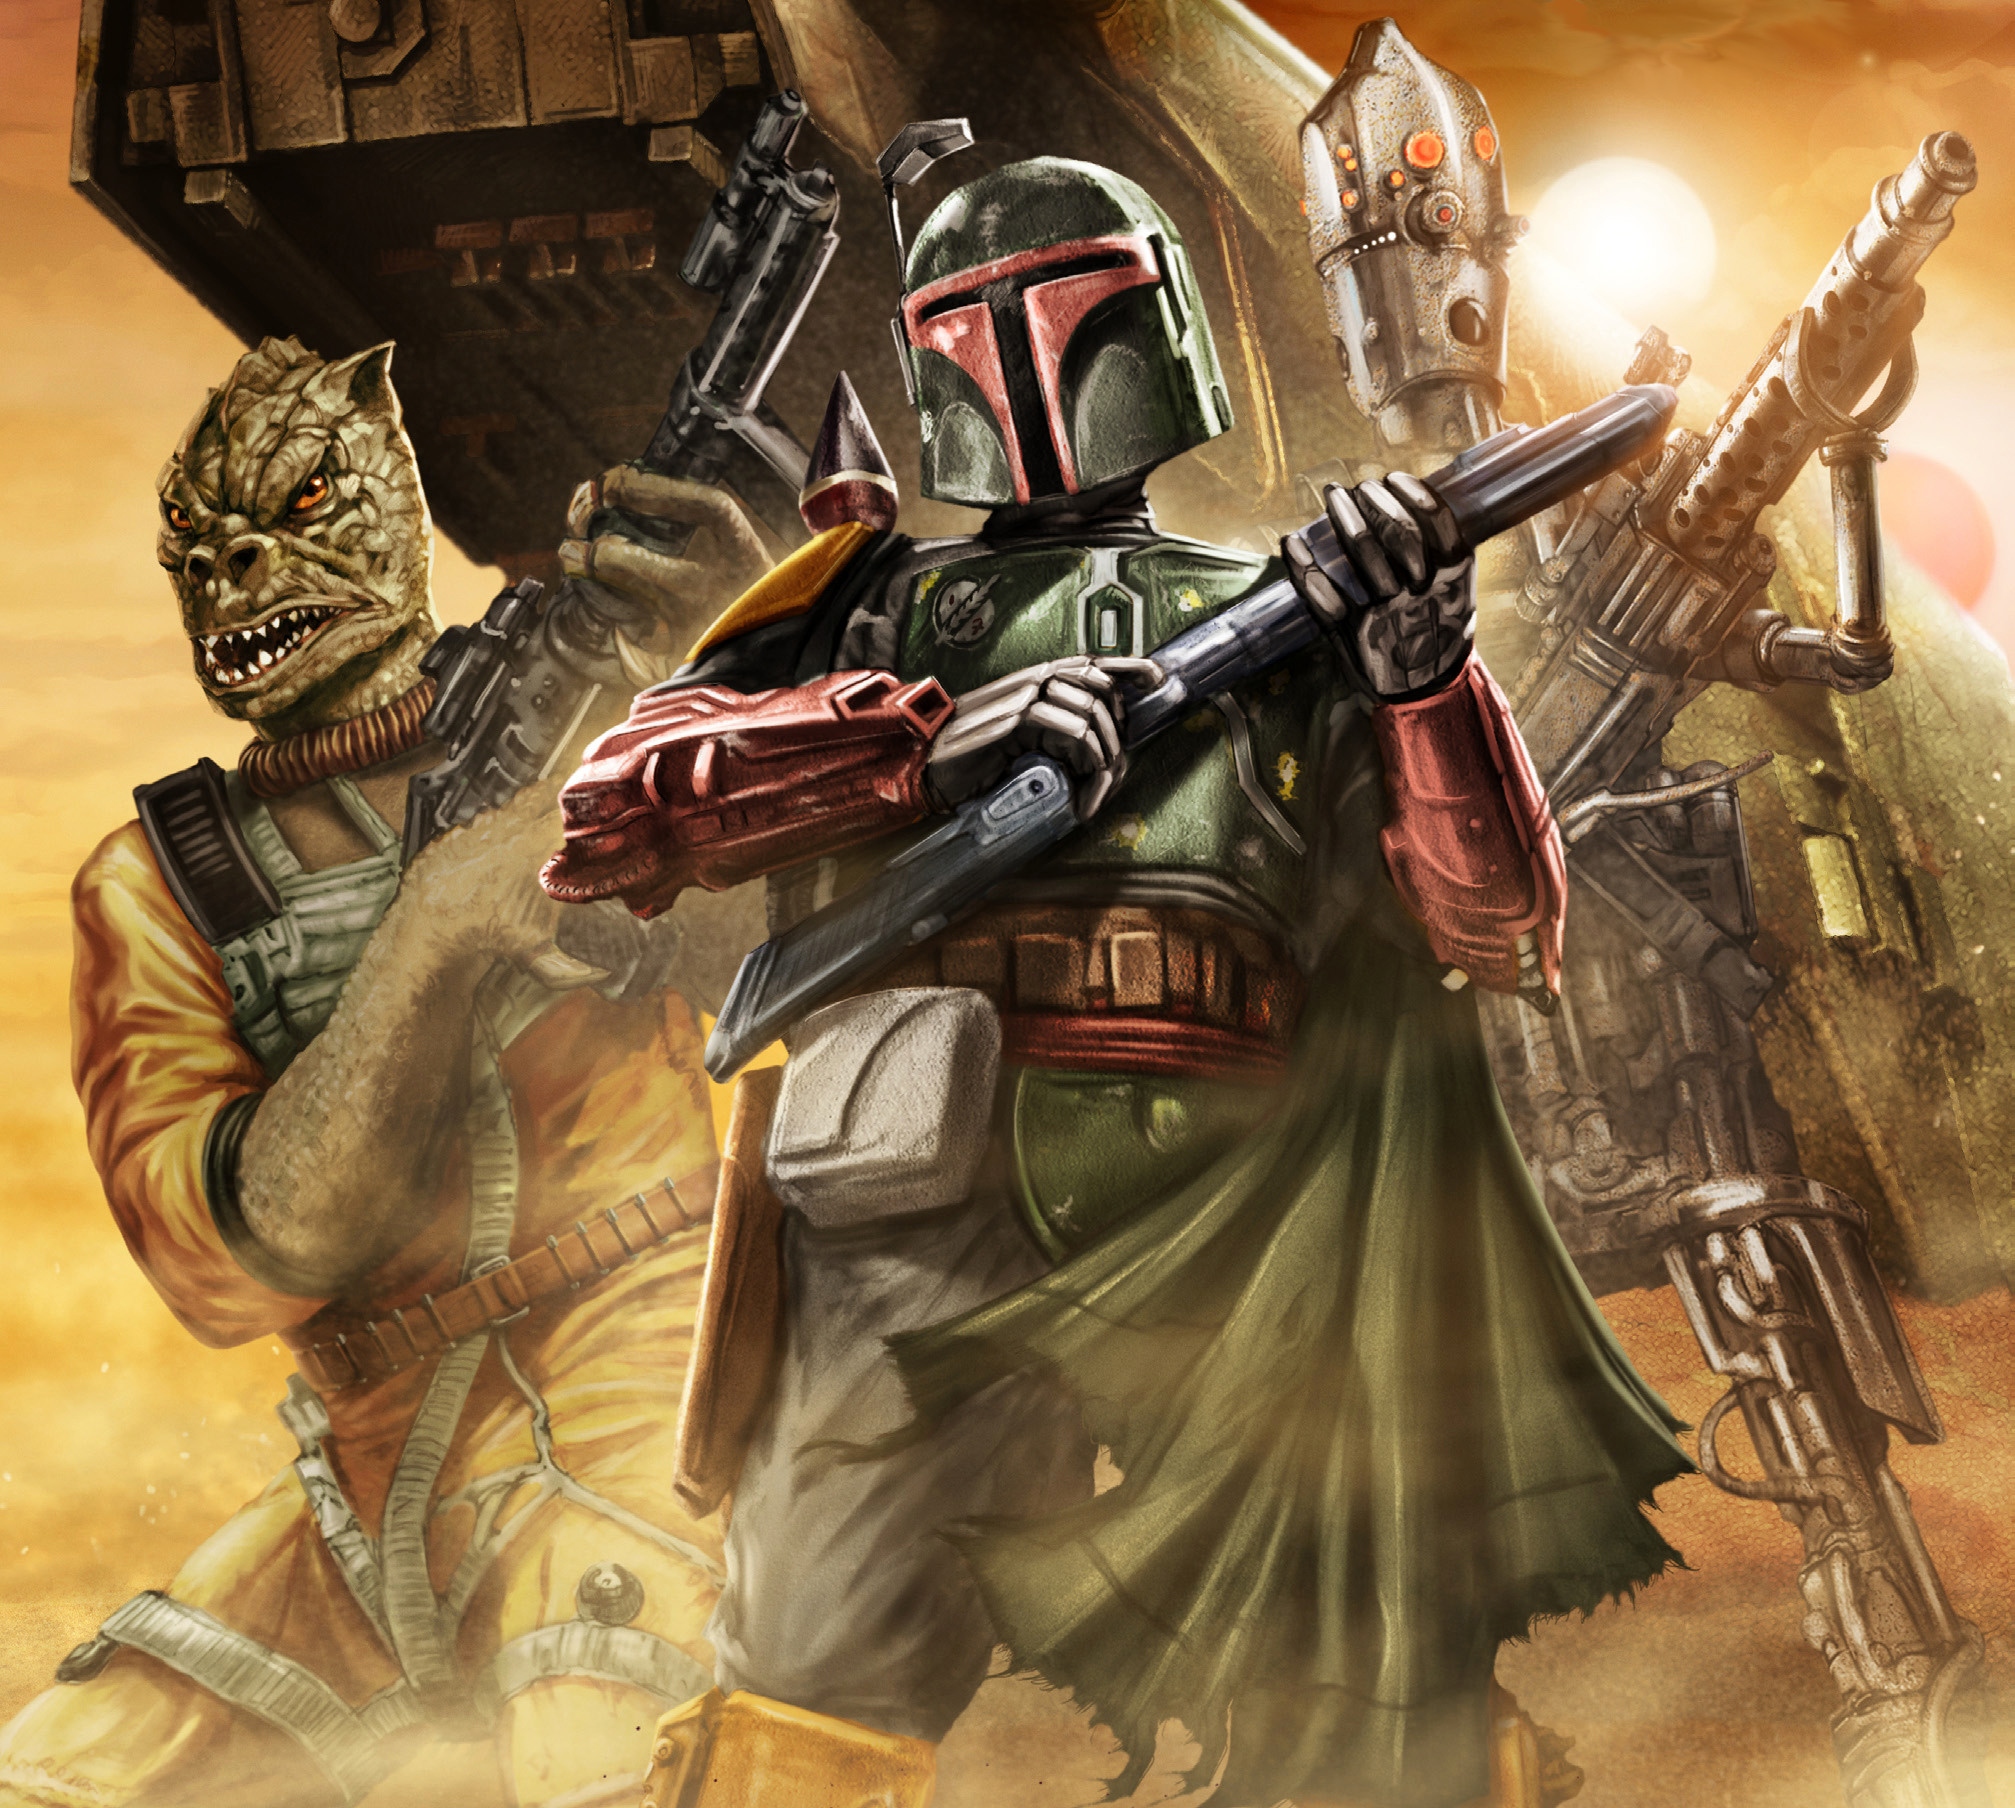 Star Wars Bounty Hunter Wallpaper 71 Images